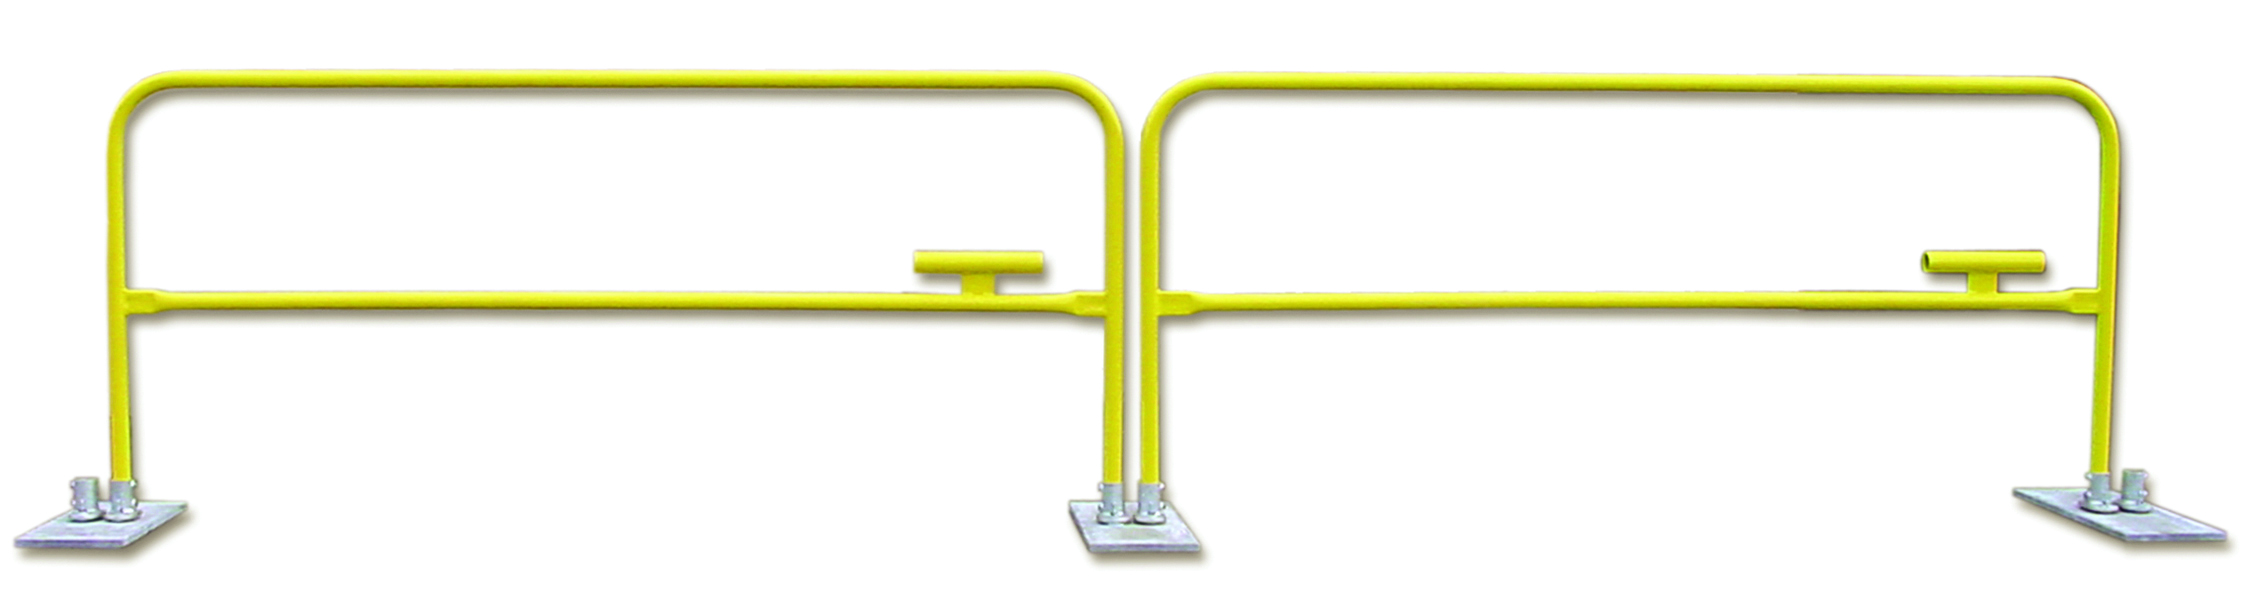 Portable Guard Rails : Personal protective equipment fall protection systems